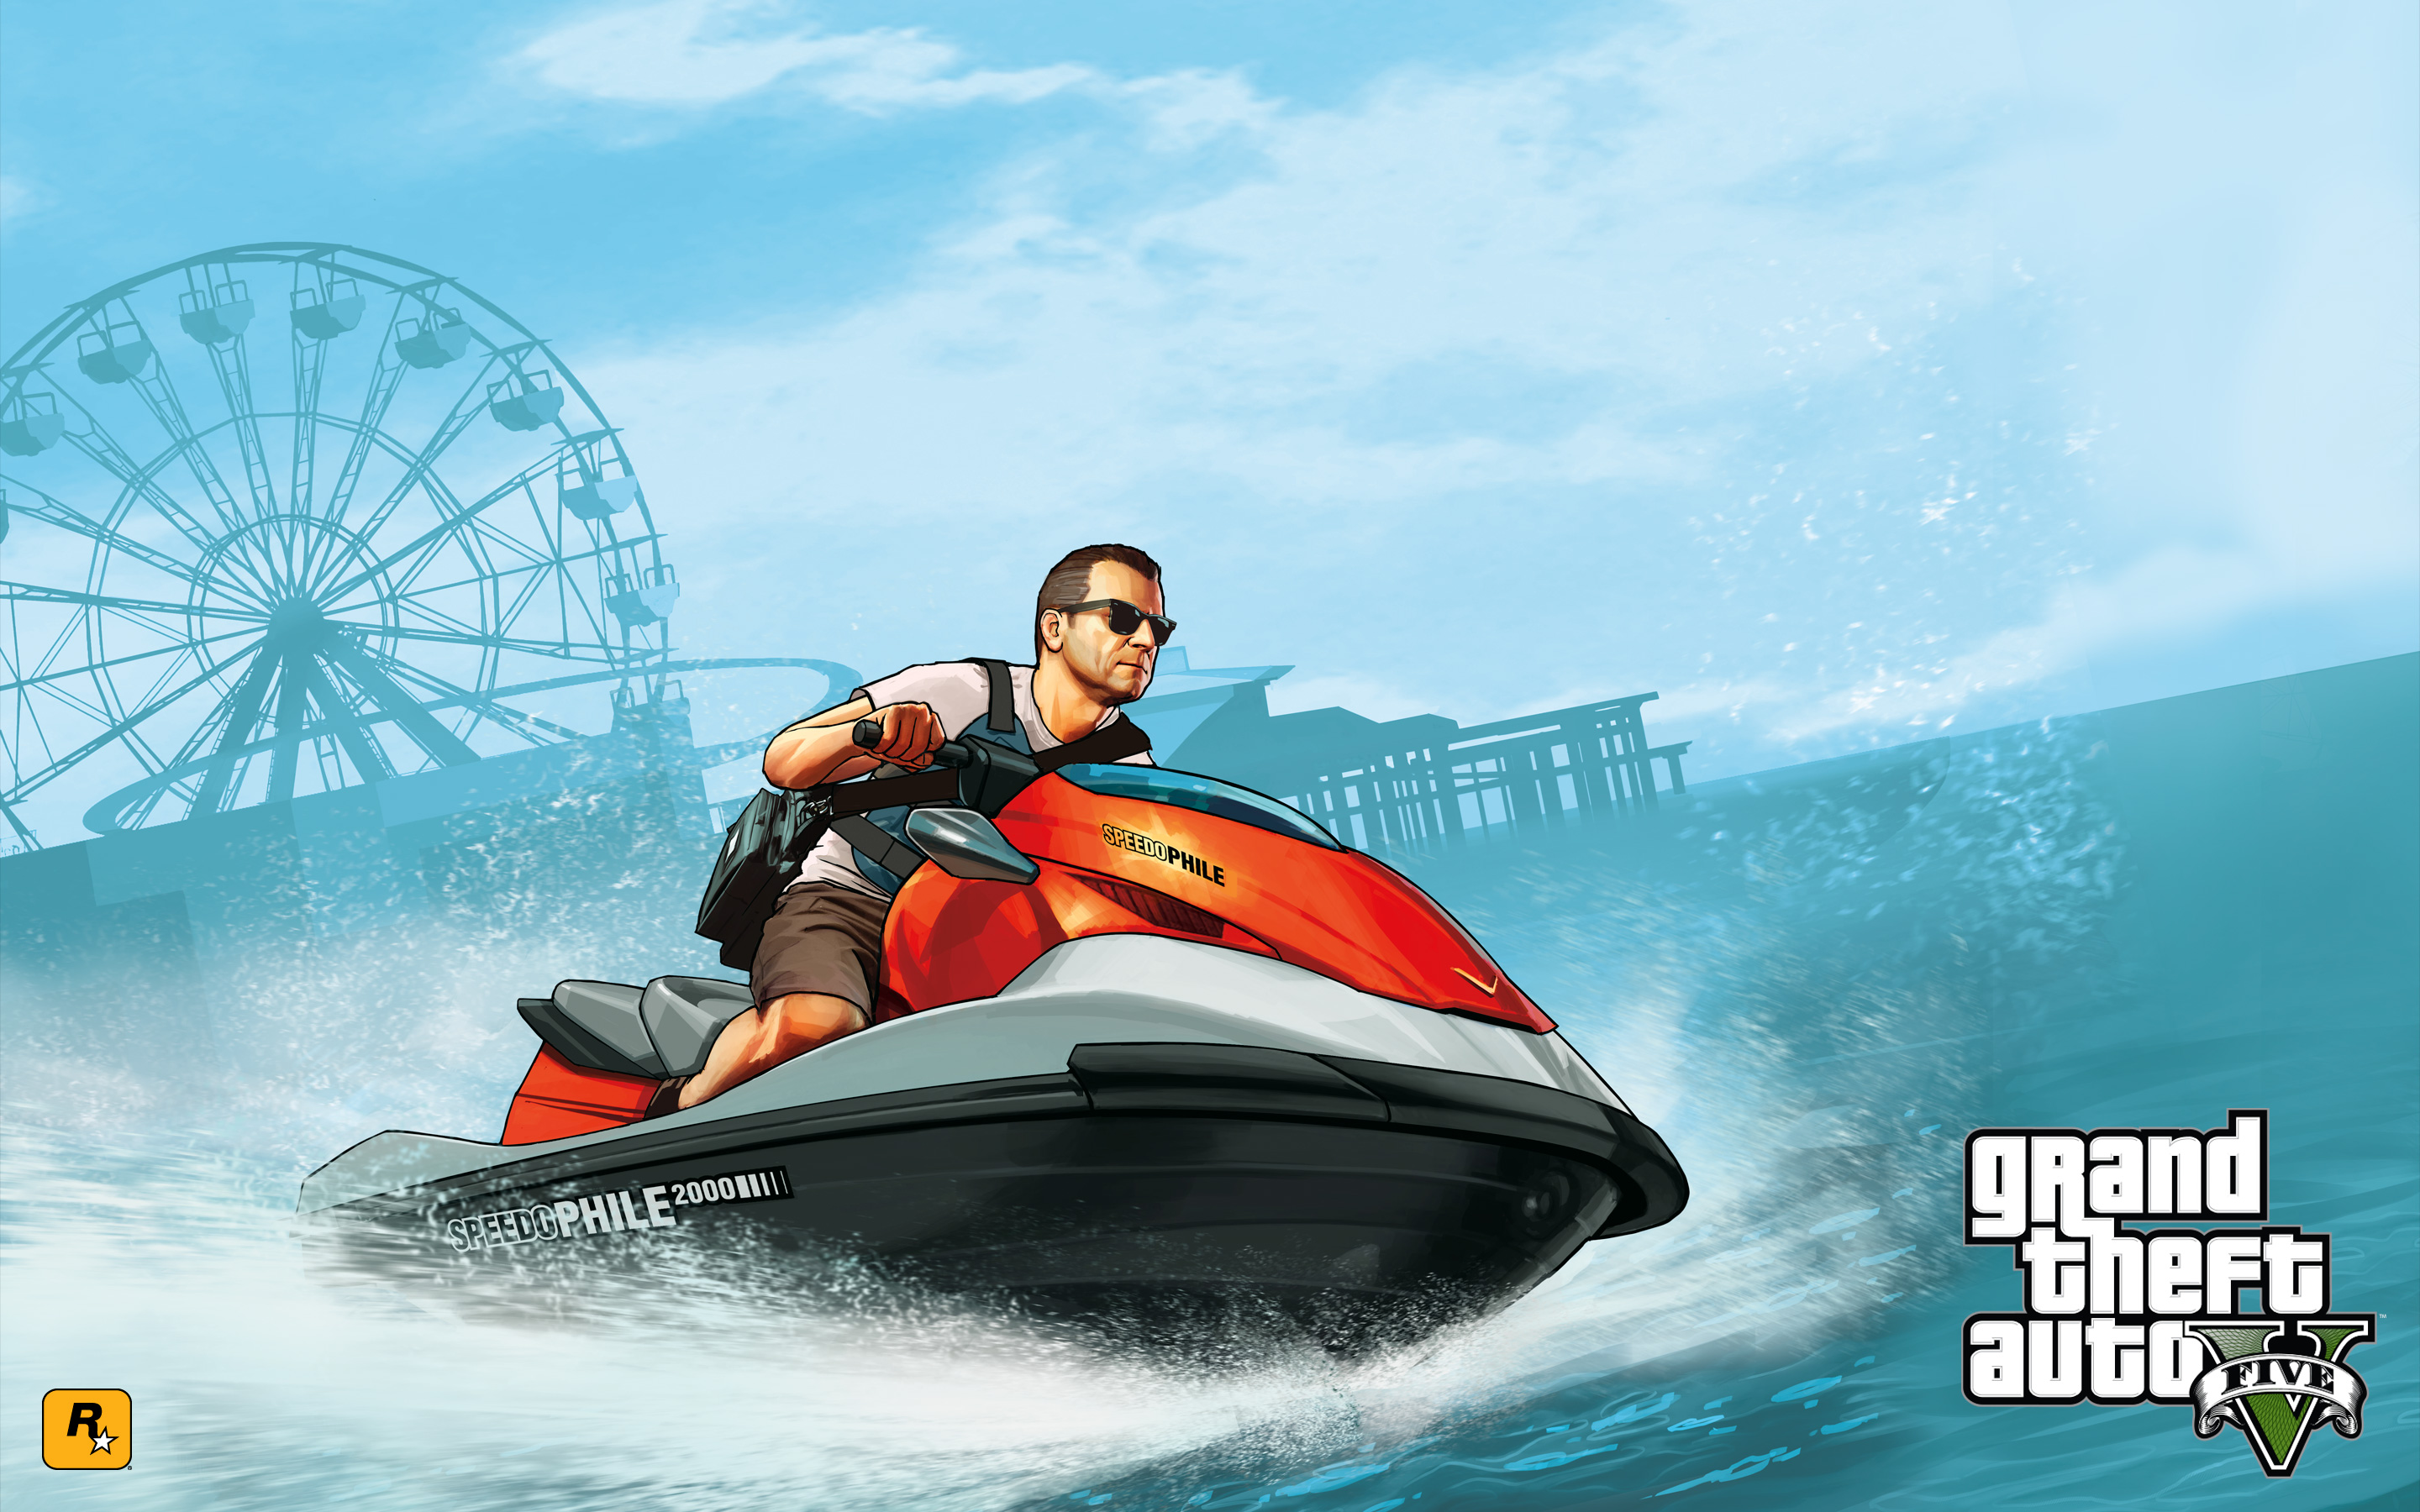 Grand Theft Auto V HD Wallpapers Backgrounds Wallpaper